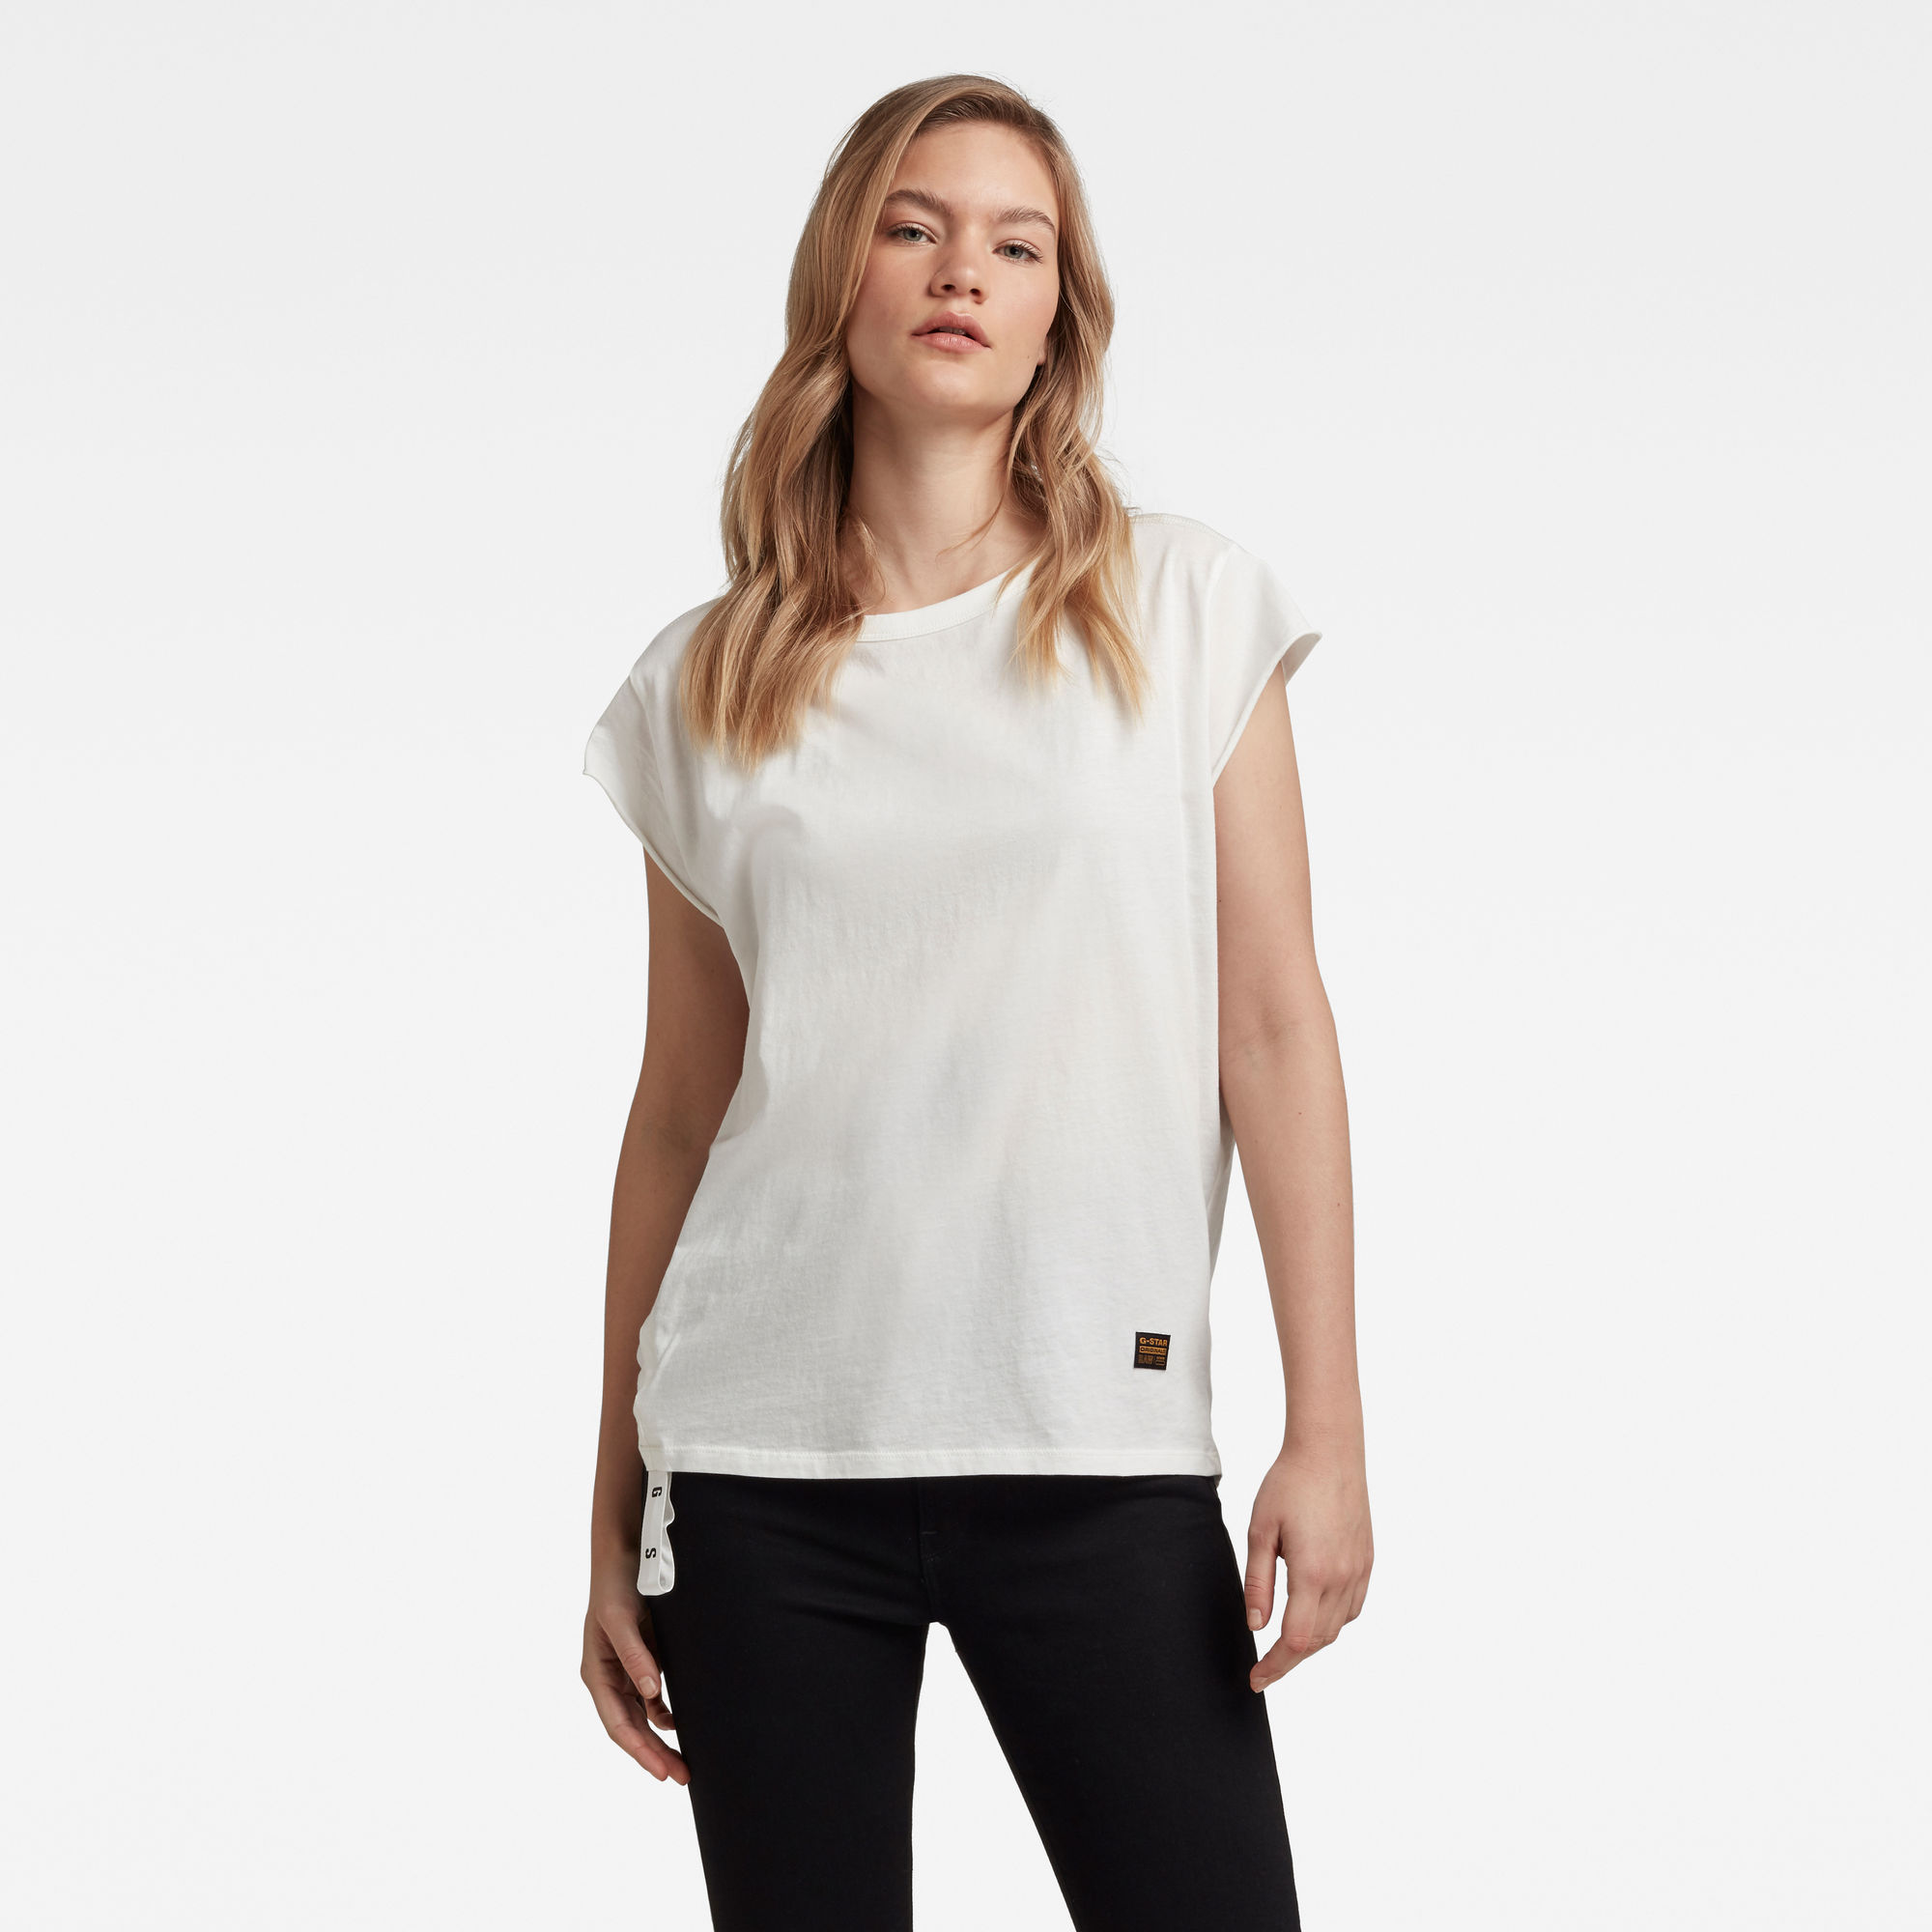 G-Star RAW Dames GSRAW Knotted Top Wit